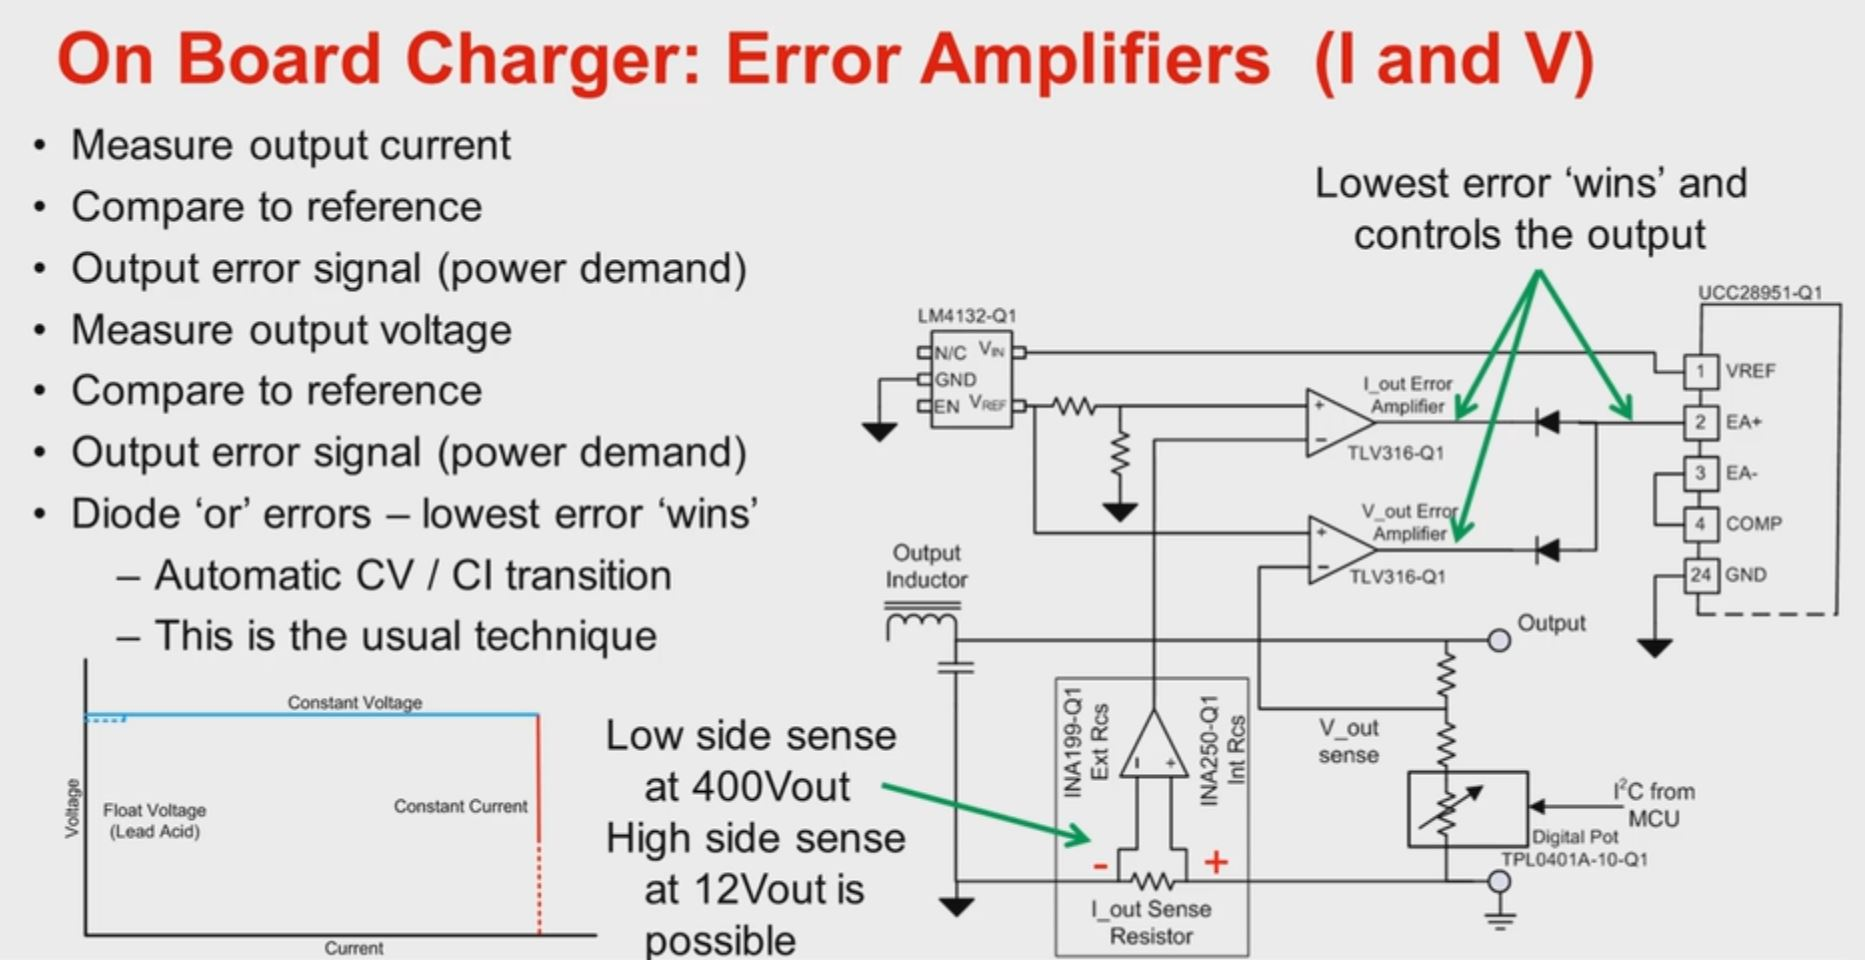 Ucc28951 Q1 Ev Charger Station Design Power Management Forum Discussion Everything Else Constant Current Source From A Battery Forgot To Add The Aforementioned Photo